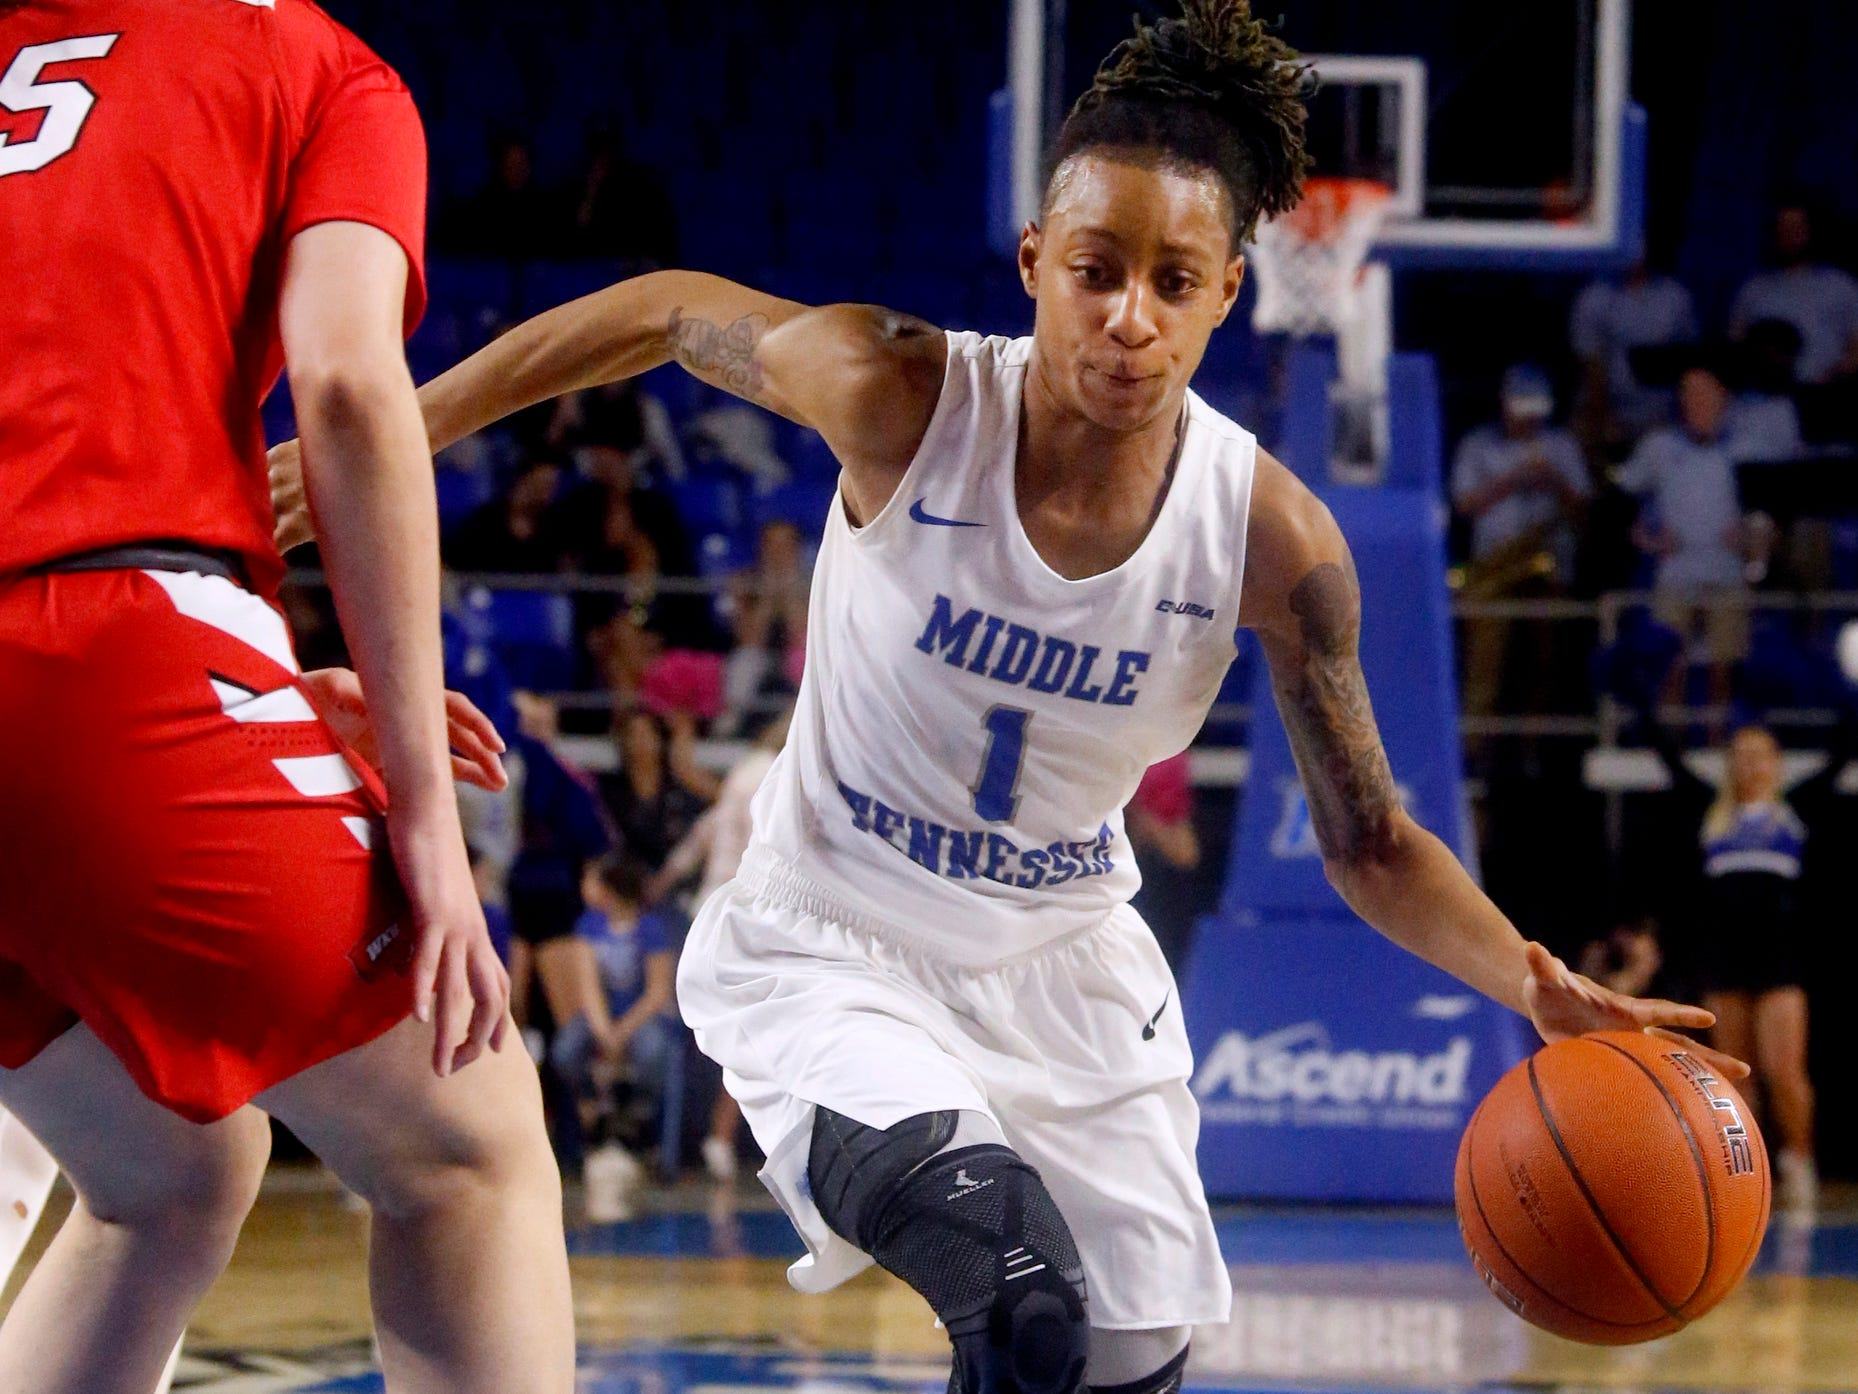 MTSU's guard A'Queen Hayes (1) drives to the basket during the game against Western on Thursday, Feb. 14, 2019.